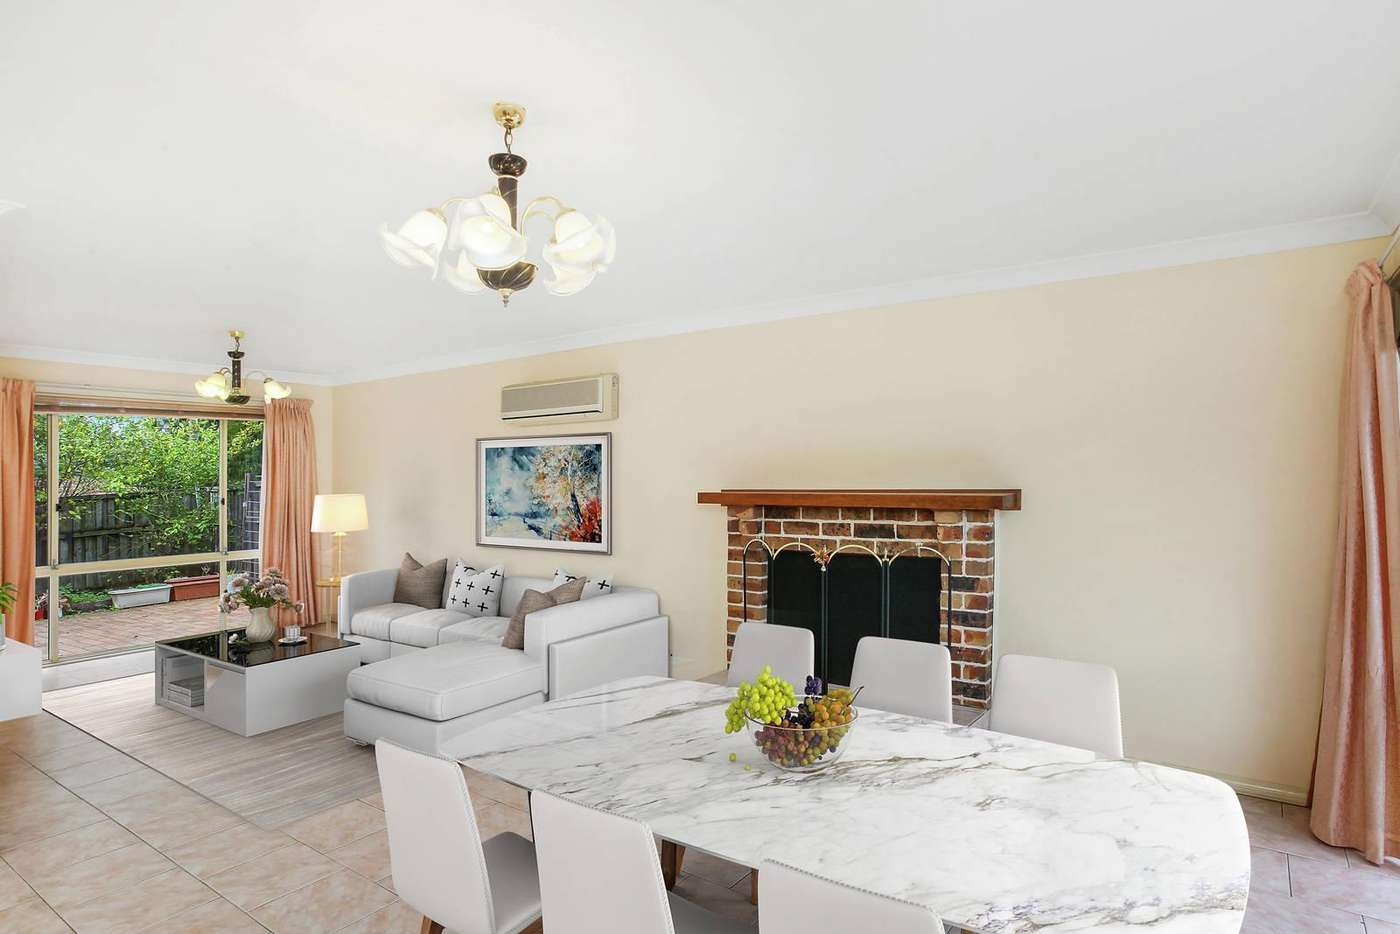 Main view of Homely villa listing, 3/3 Treharne Close, Marsfield NSW 2122